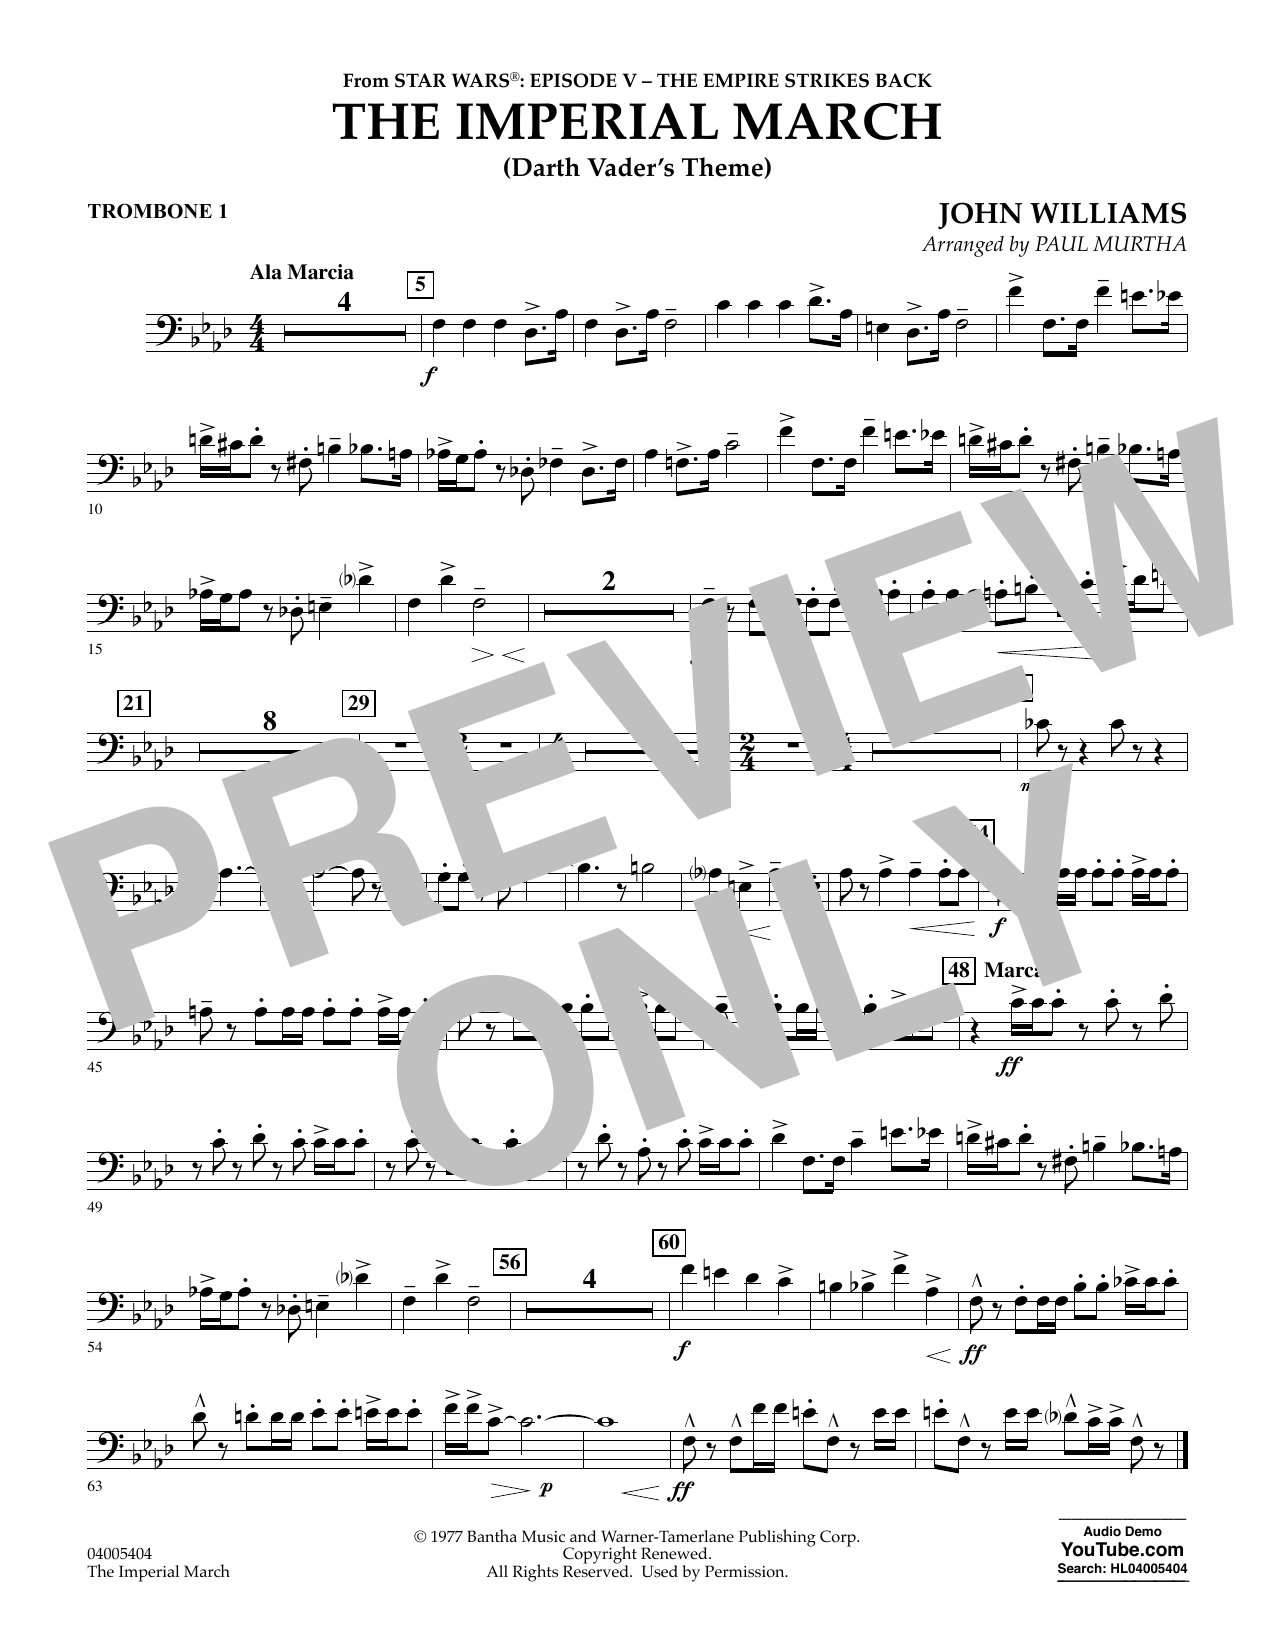 Imperial March Trombone Sheet Music : imperial, march, trombone, sheet, music, Imperial, March, (Darth, Vader's, Theme), Trombone, Sheet, Music, Murtha, Concert